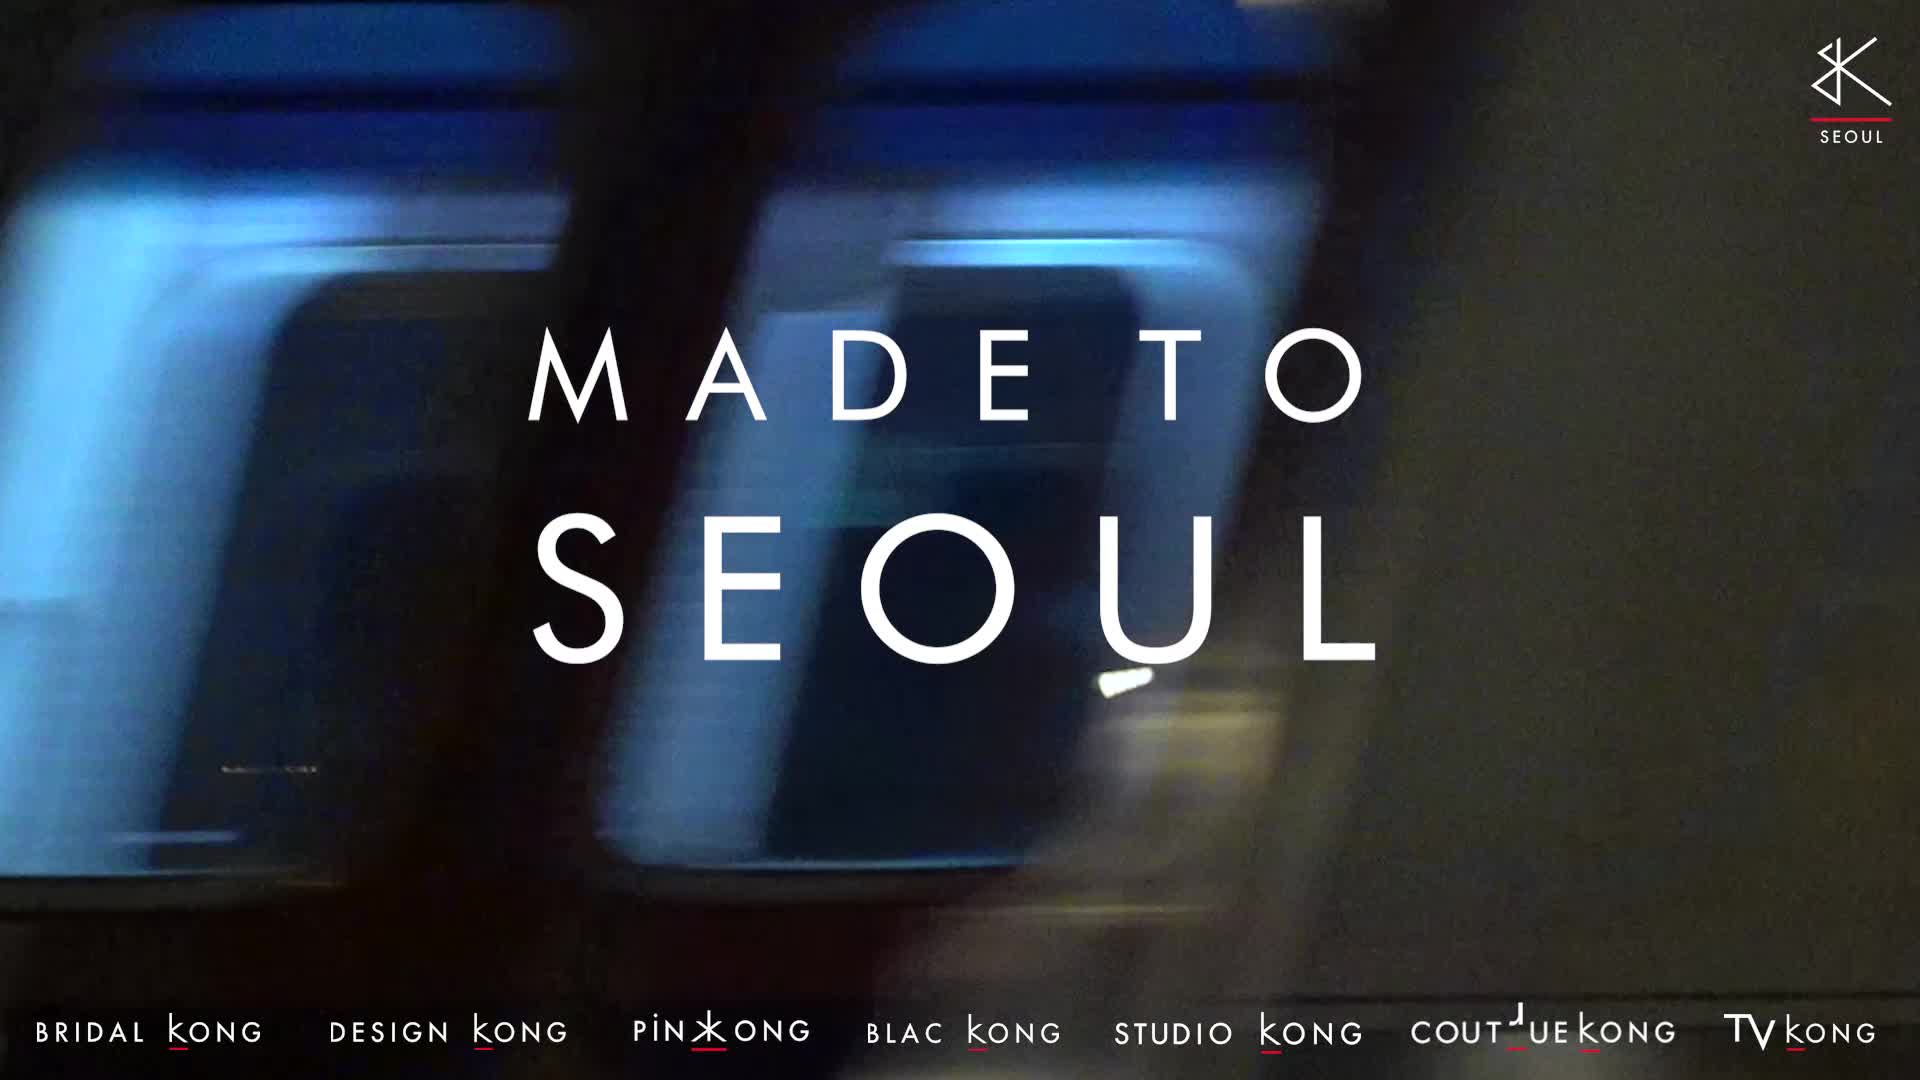 MADE TO SEOUL 완료#2